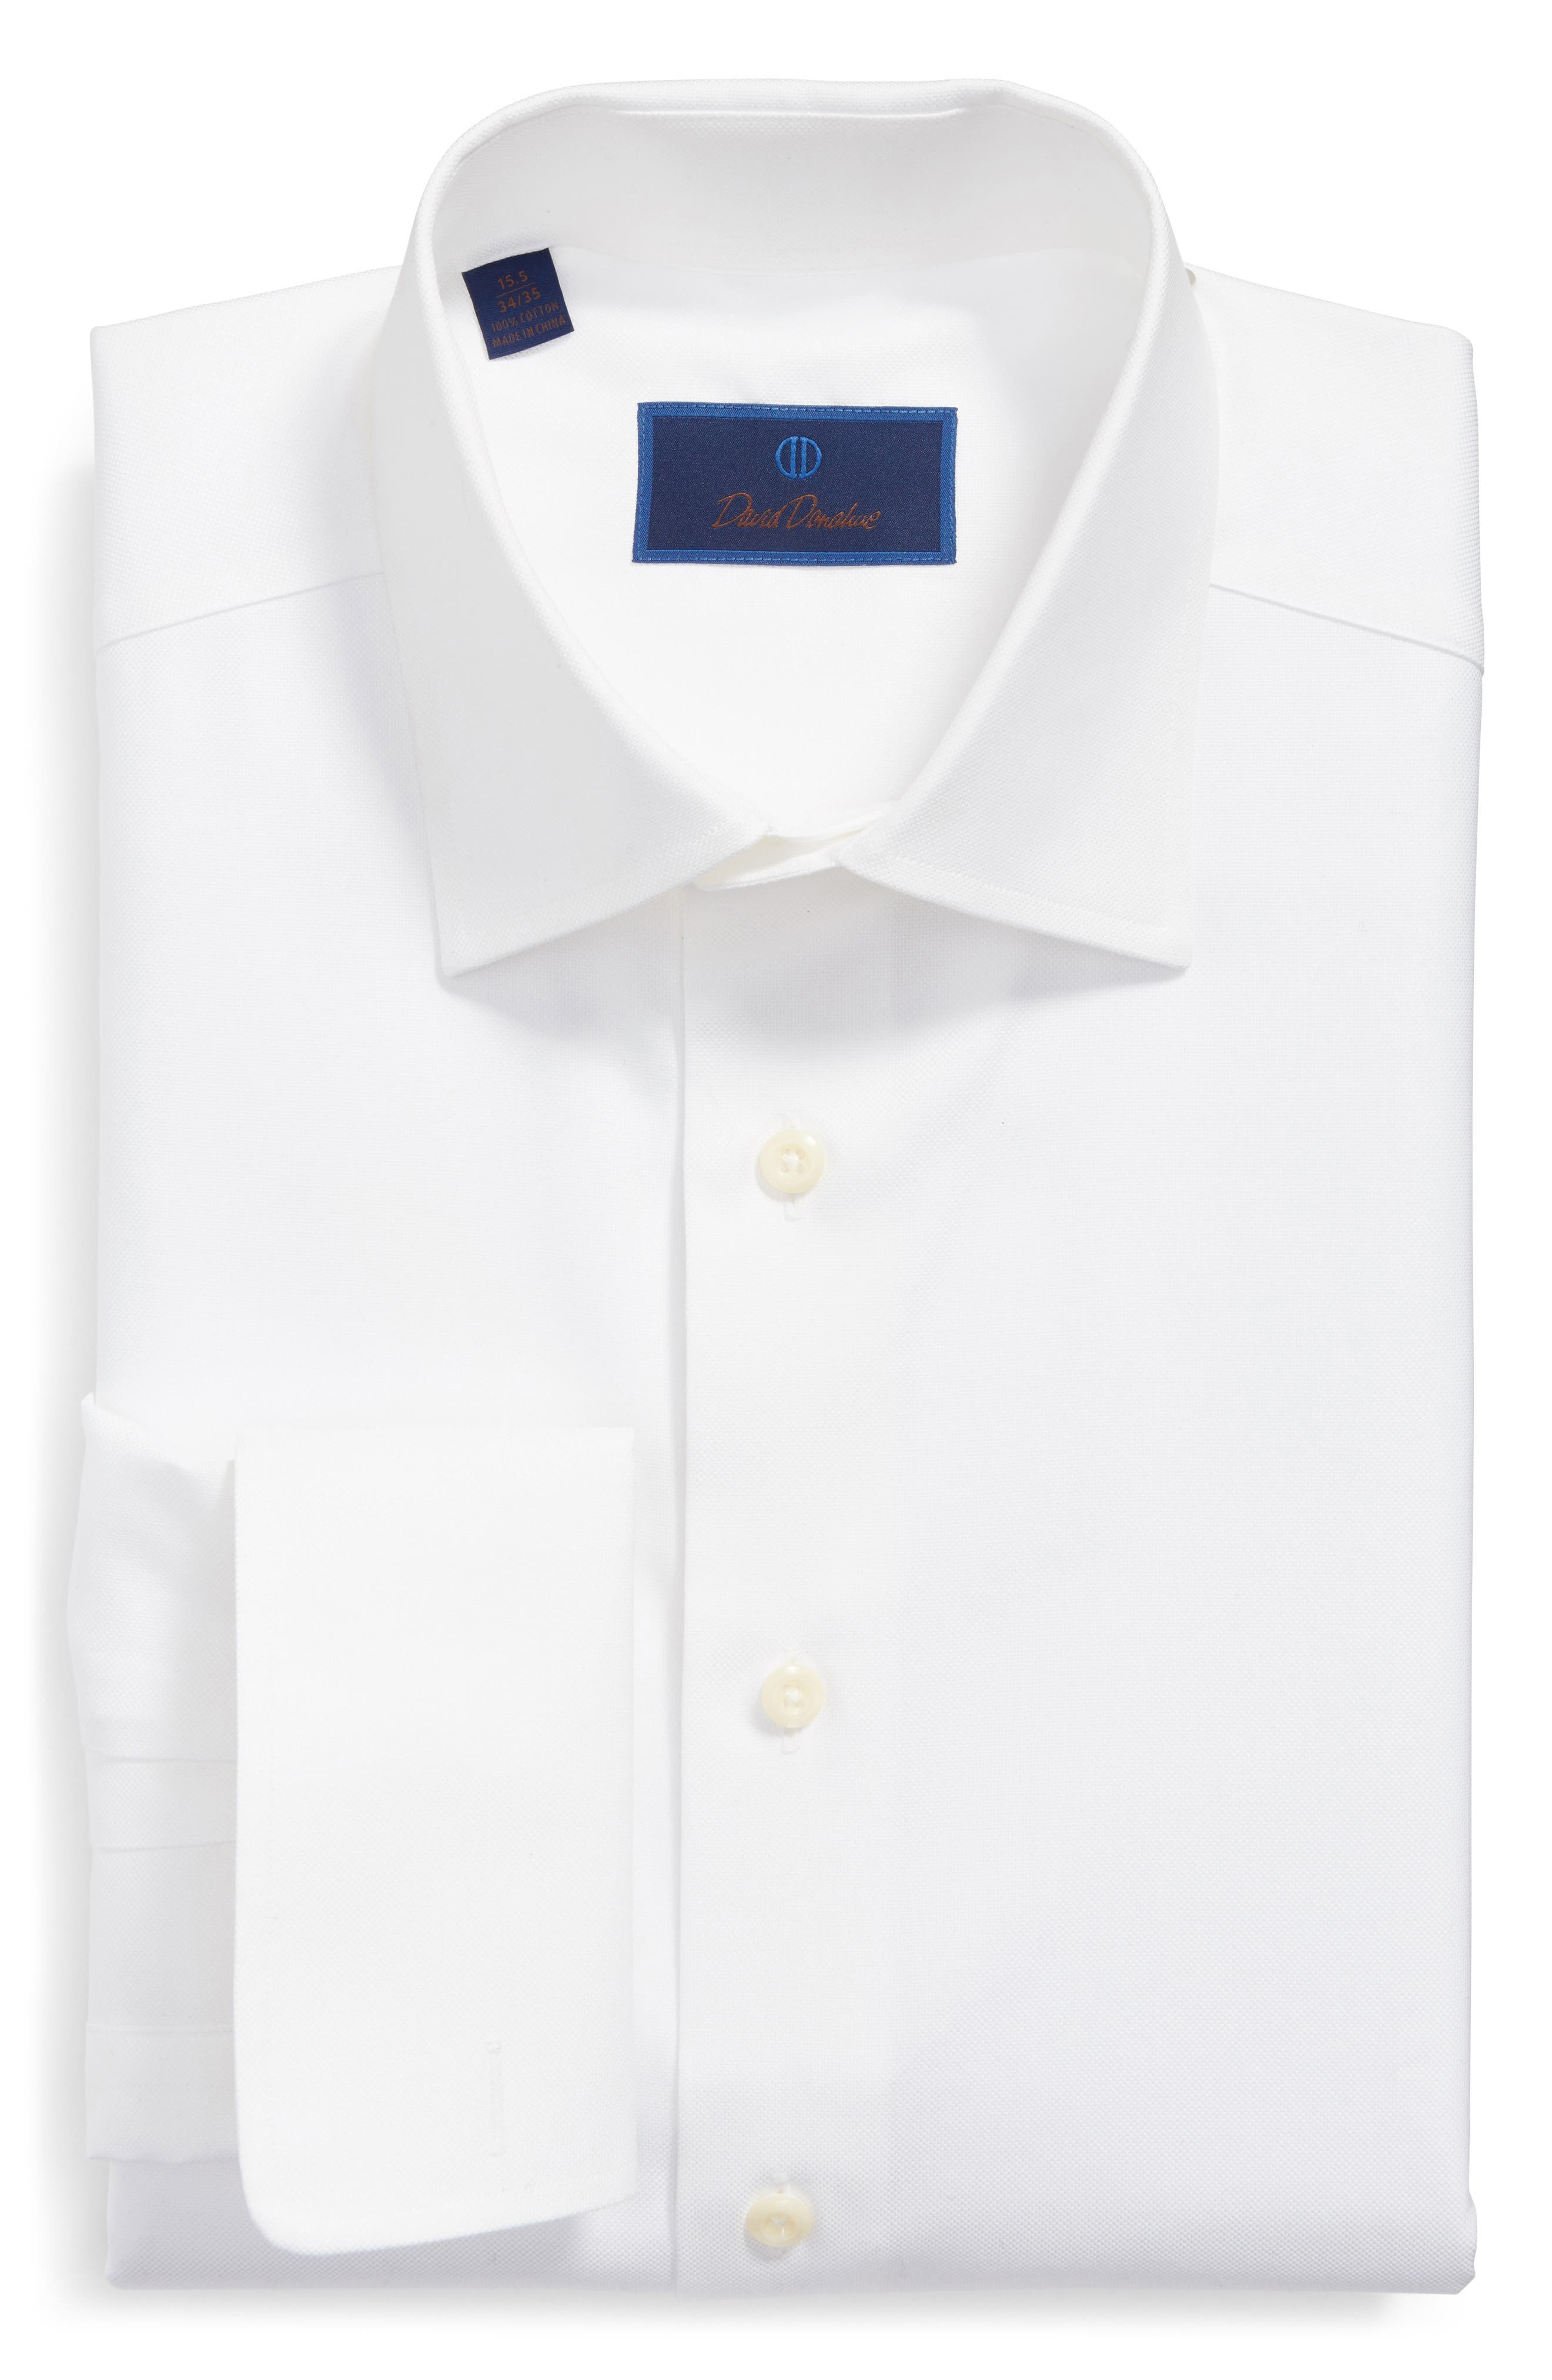 Regular Fit Texture French Cuff Dress Shirt,                         Main,                         color, White